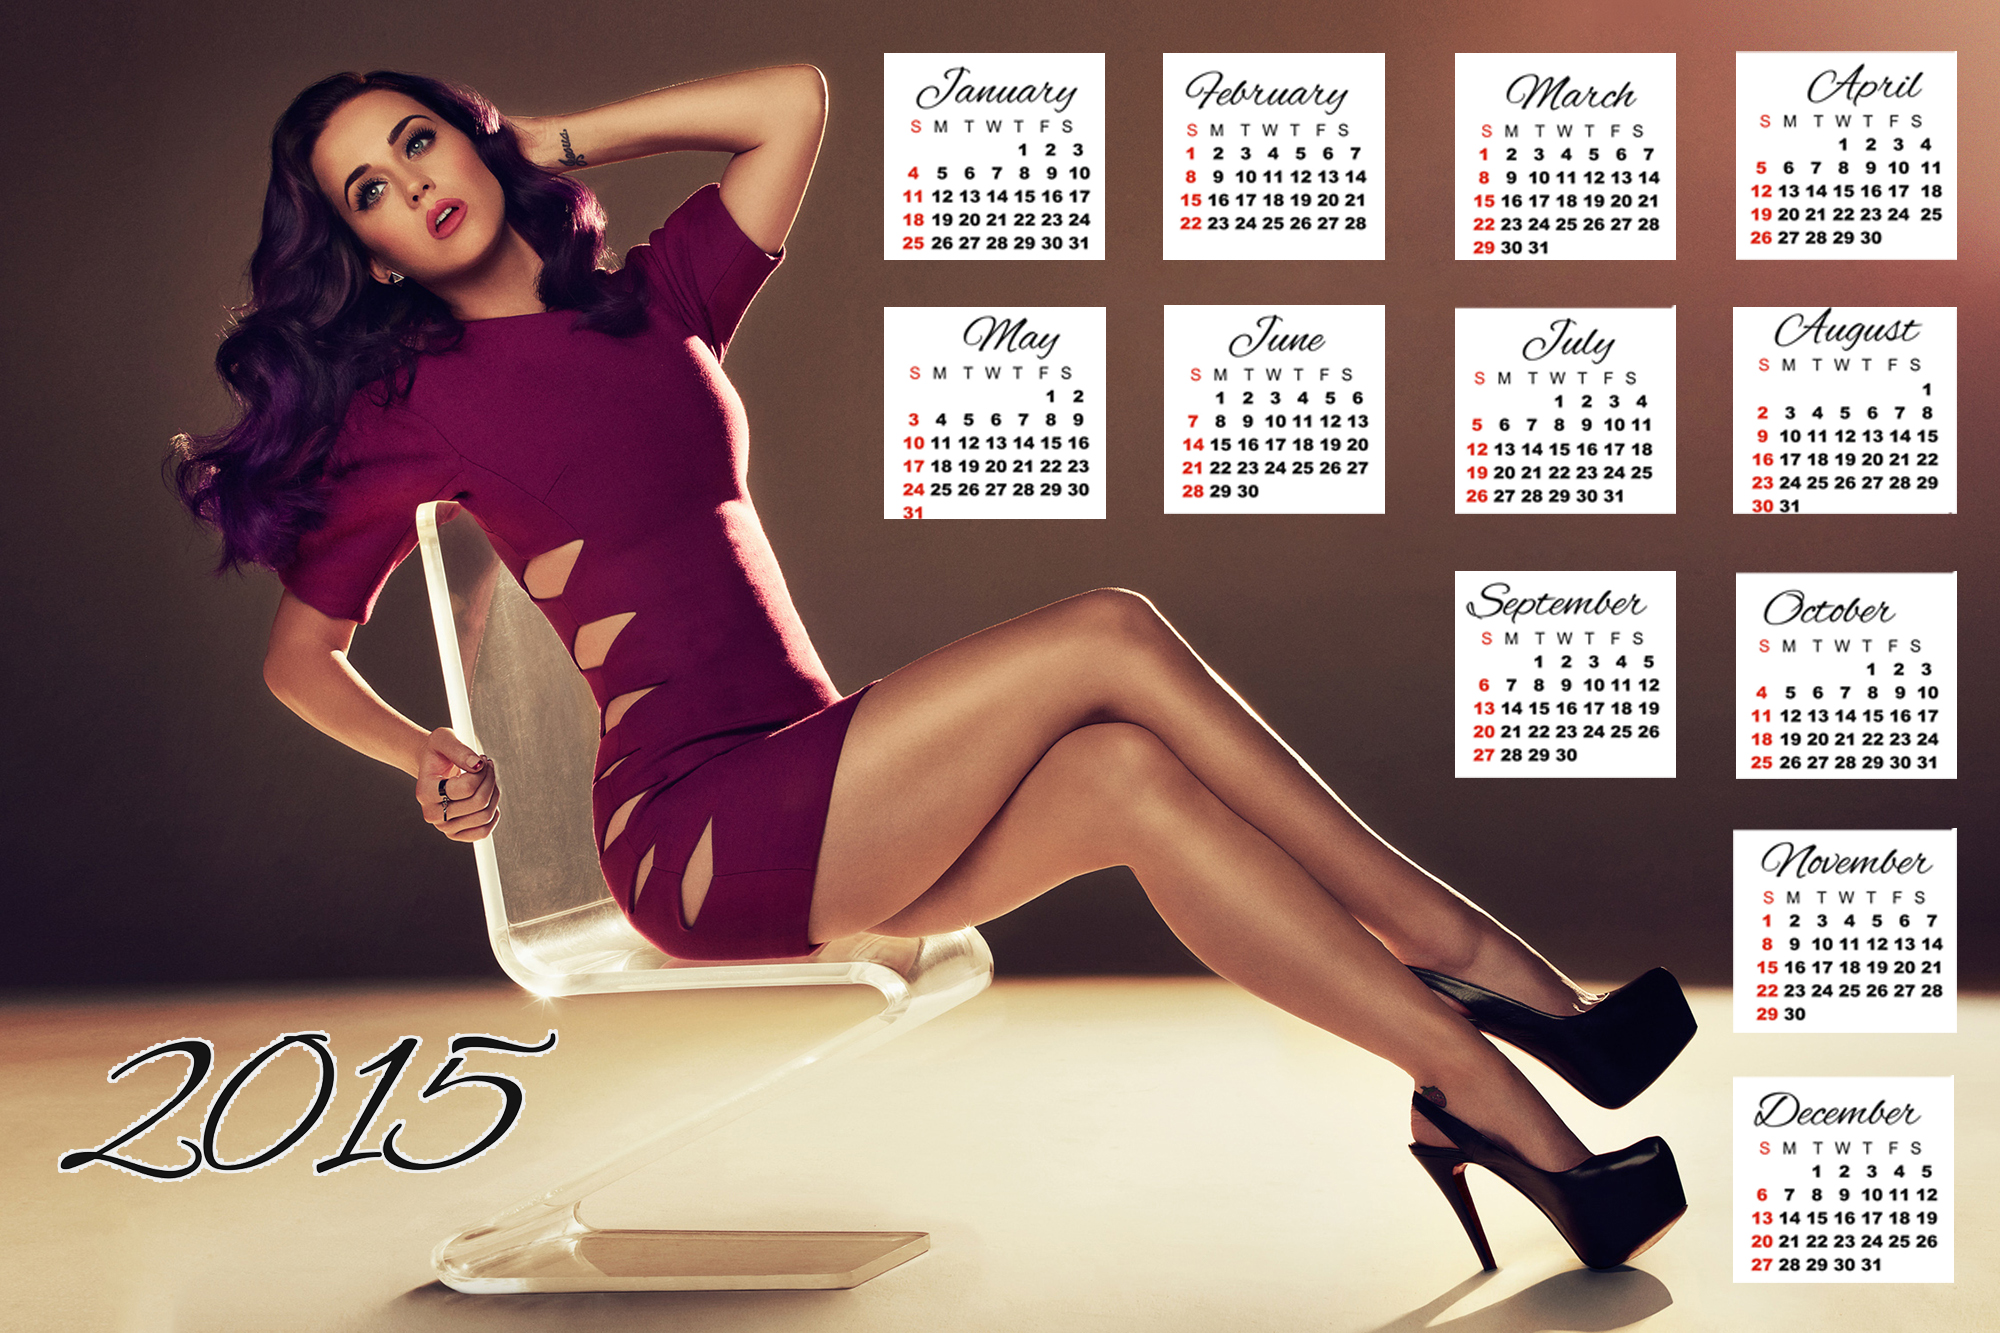 Katy Perry purple dress wallpaper calendar 2015